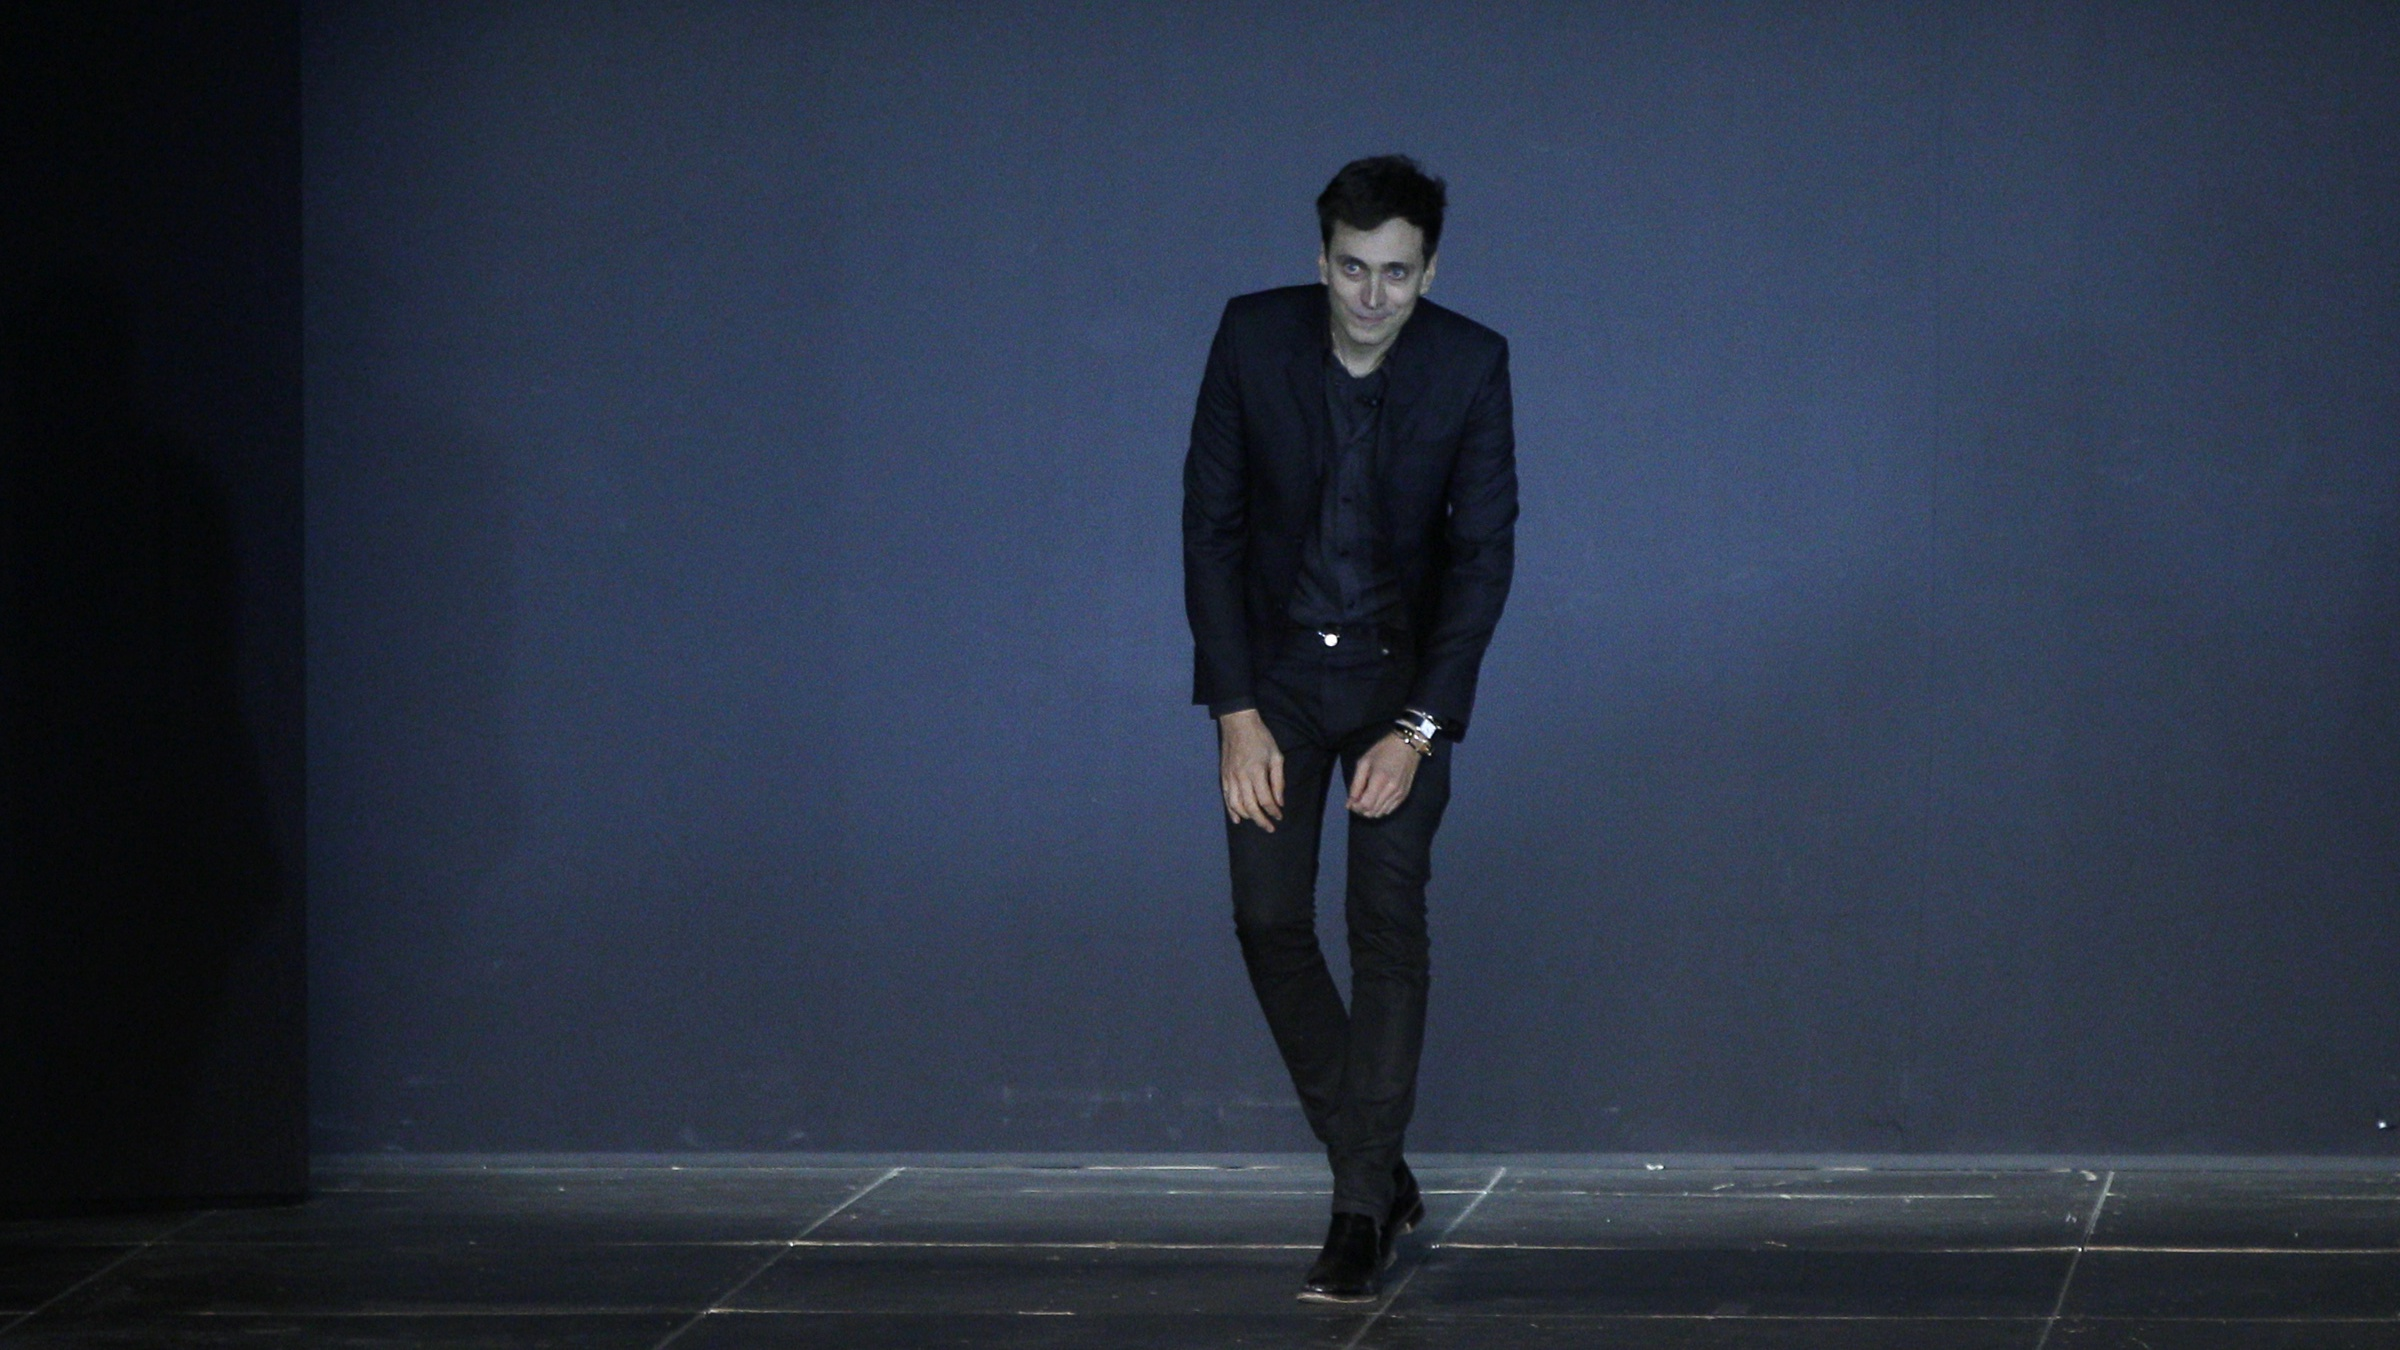 French designer Hedi Slimane appears at the end of his Spring/Summer 2013 women's ready-to-wear fashion show for French fashion house Saint Laurent Paris during Paris fashion week October 1, 2012.